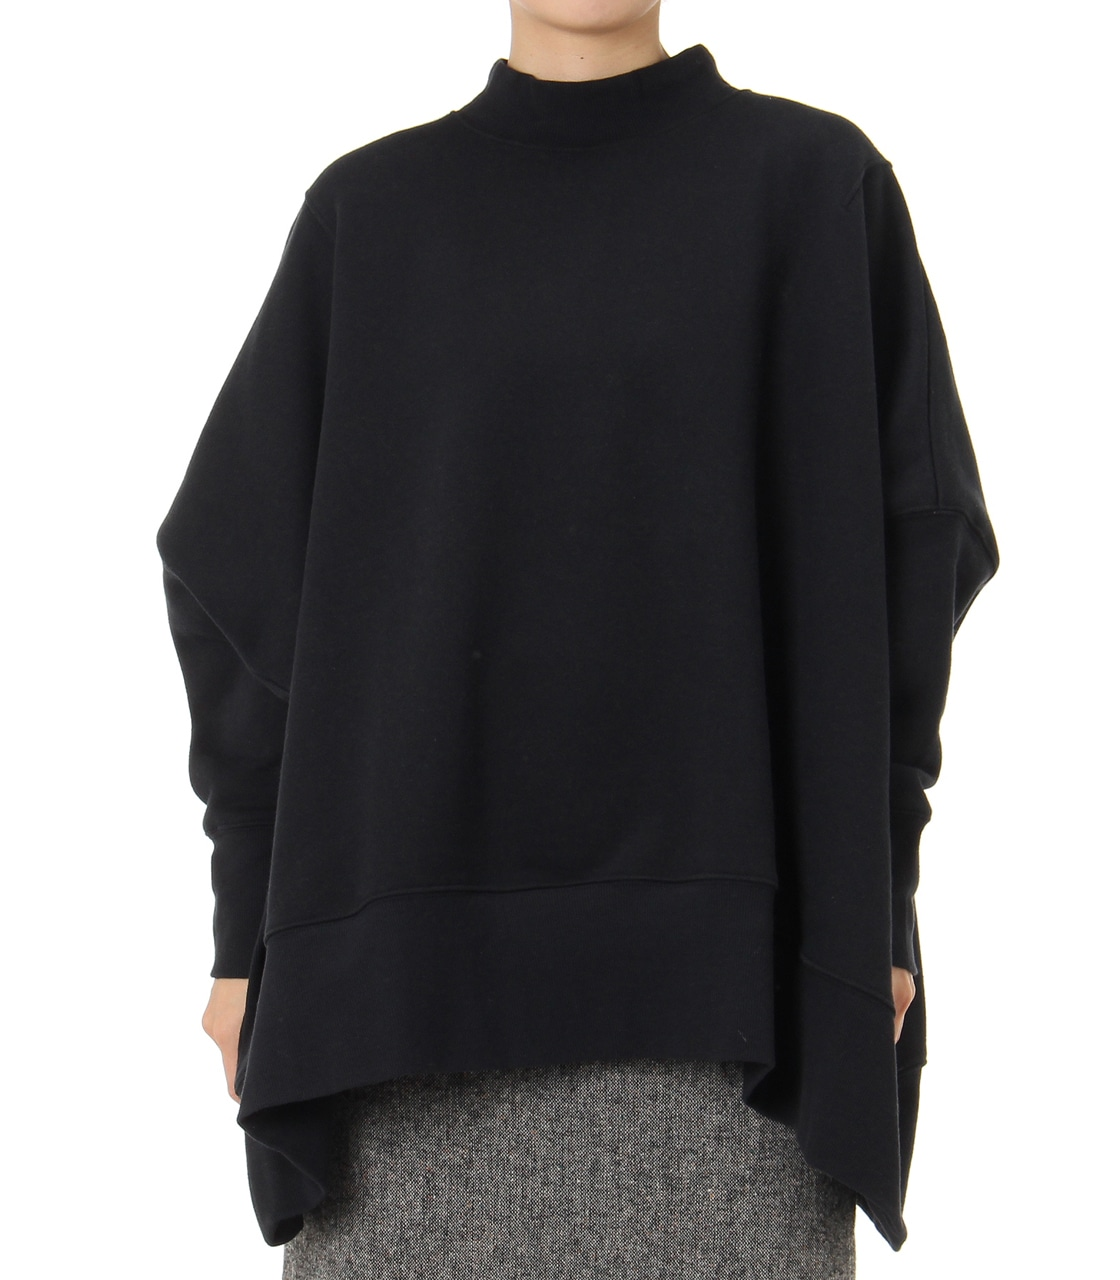 【AZUL BY MOUSSY】変形ドルマン裏毛チュニック 詳細画像 BLK 1